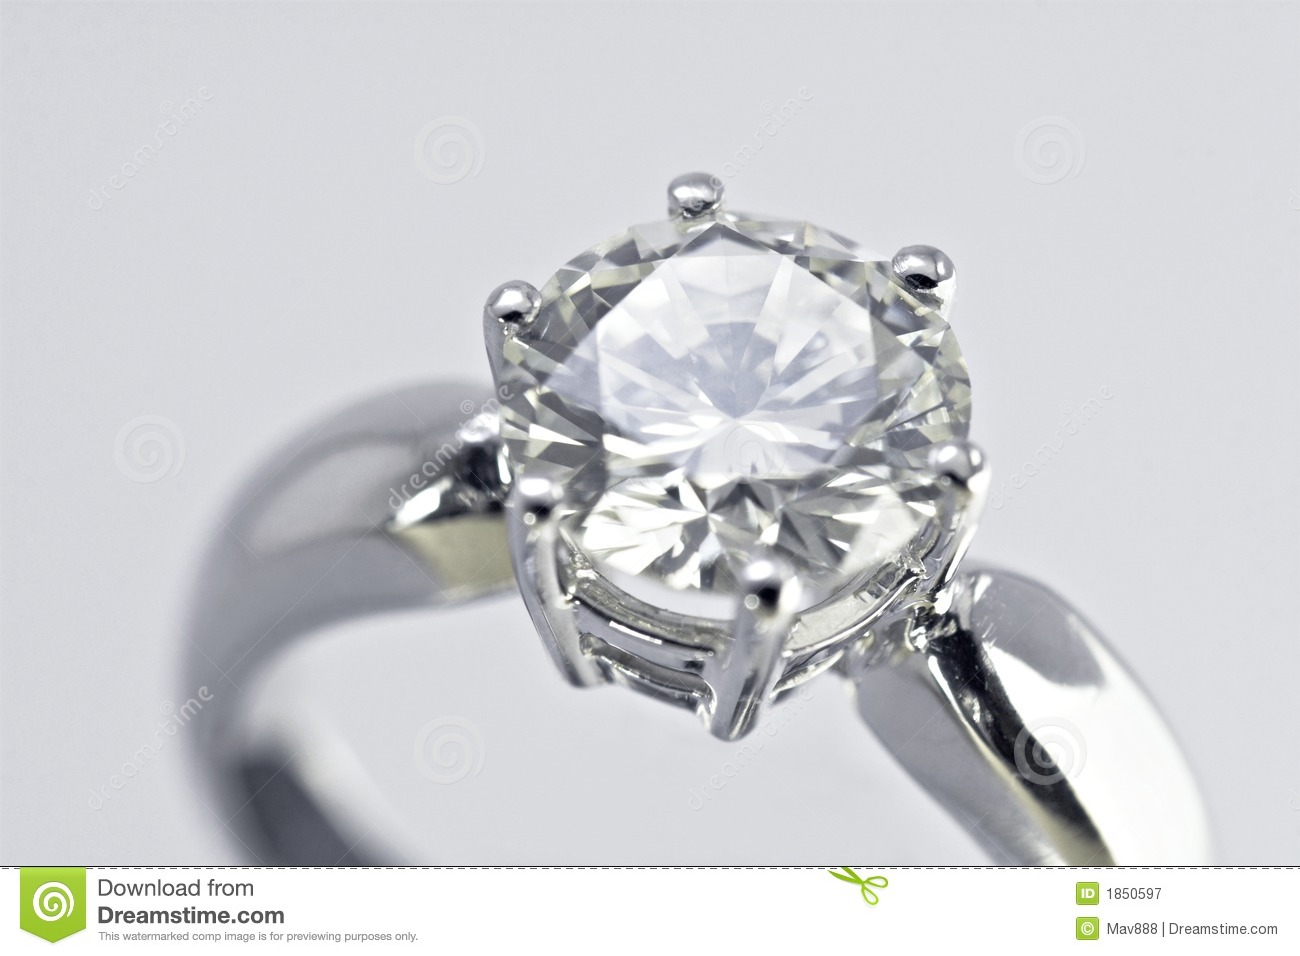 Diamond Ring Royalty Free Stock Photography  Image 1850597. Mint Engagement Rings. Tiffany Sparkler Rings. Black Gold Wedding Rings. Kpop Rings. Light Yellow Engagement Rings. Million Dollar Engagement Rings. Reproduction Engagement Rings. Accessory Engagement Rings